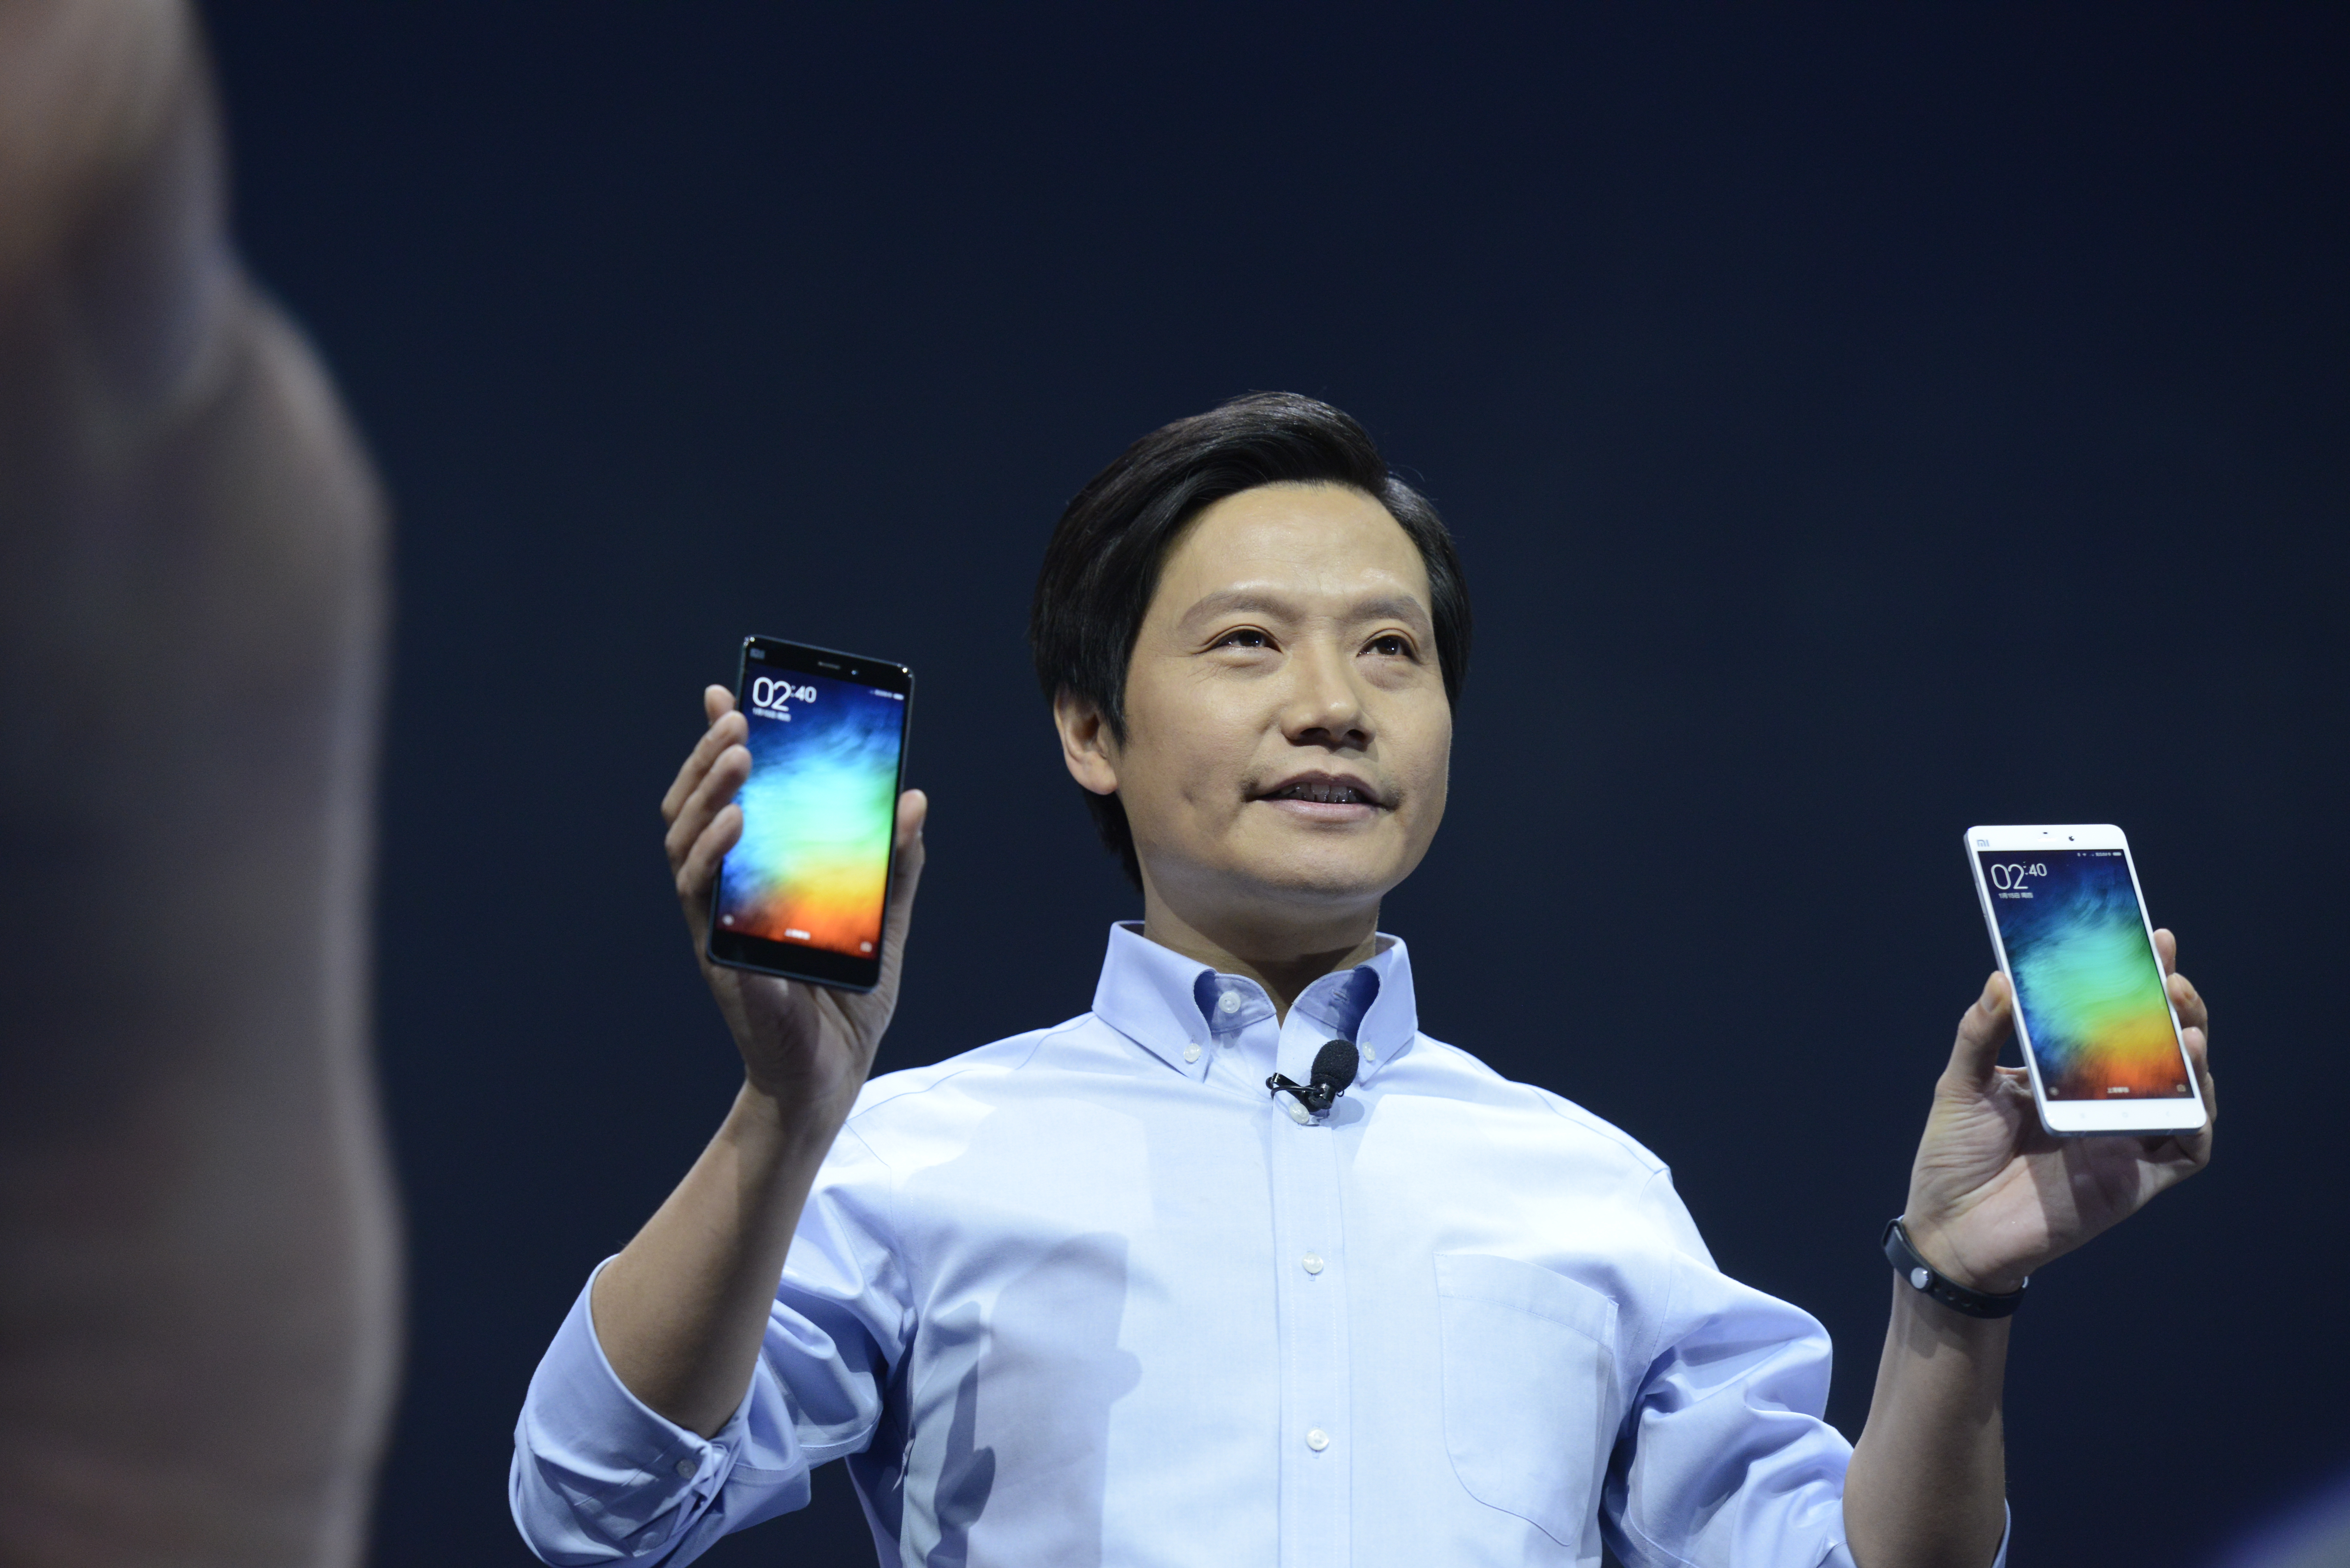 UNICORN 2015 — Lei Jun Xiaomi